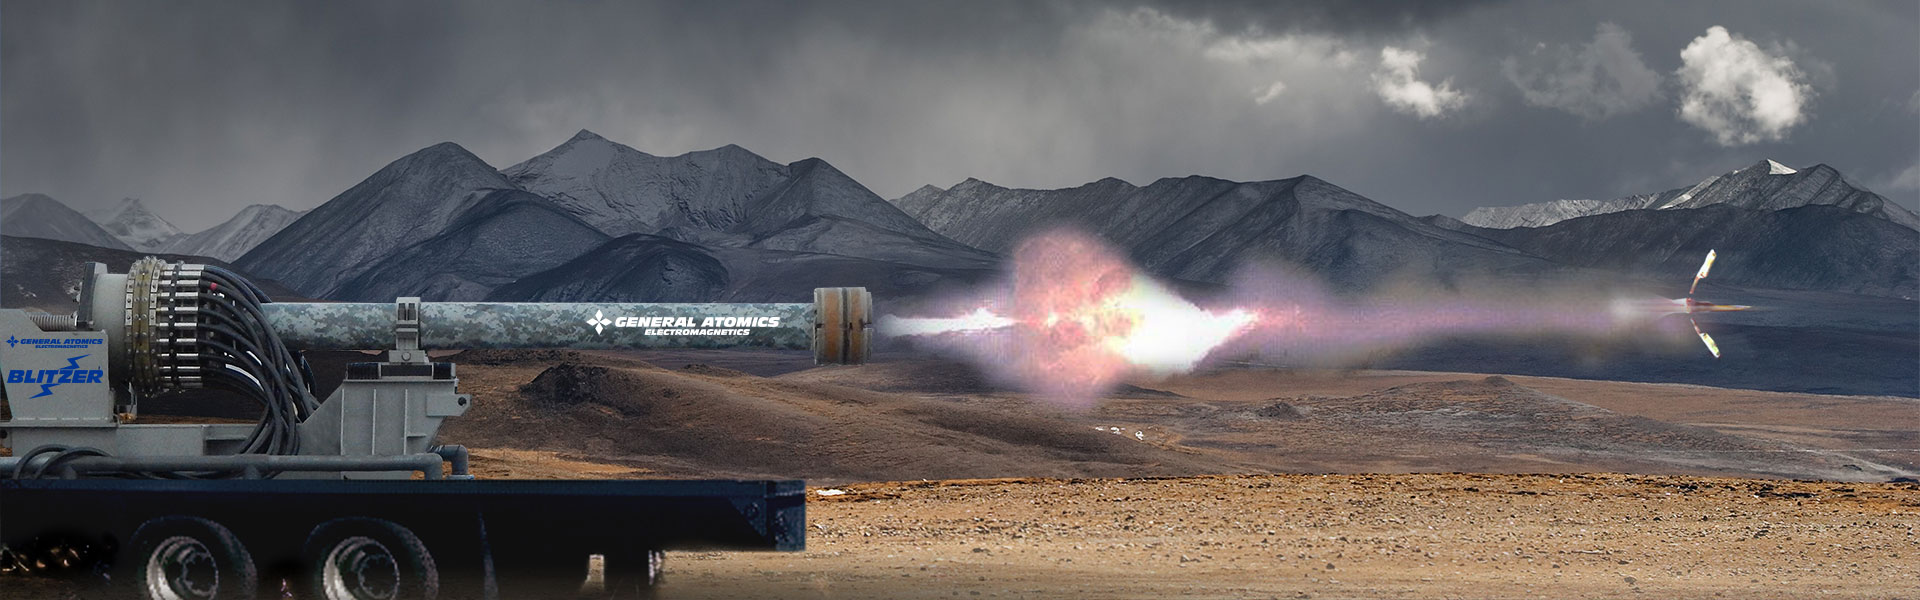 Electromagnetic Railgun Systems